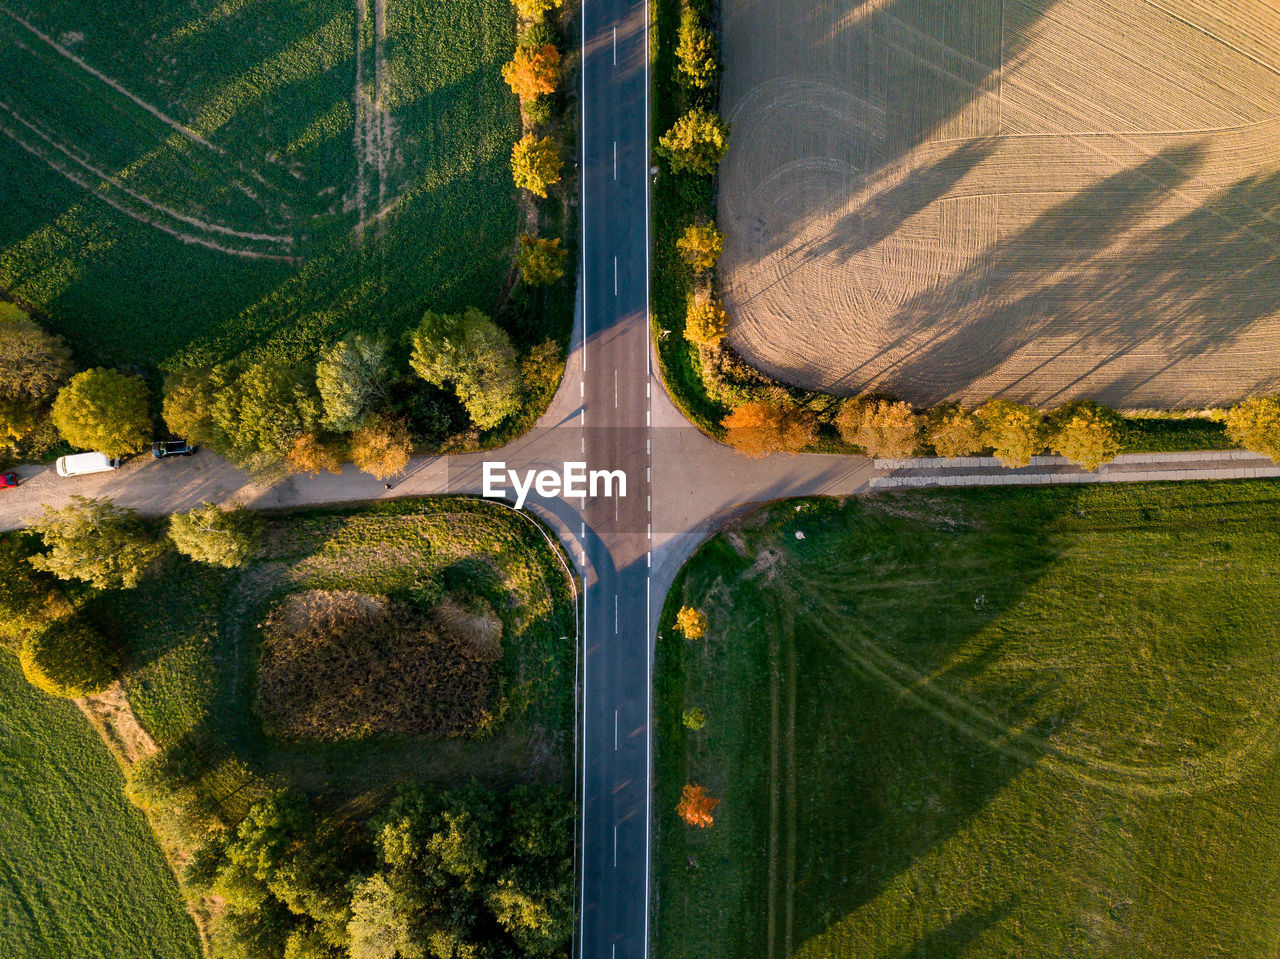 aerial view, plant, nature, tree, land, road, no people, green color, landscape, environment, scenics - nature, rural scene, growth, day, forest, sunlight, agriculture, transportation, outdoors, tranquility, woodland, above